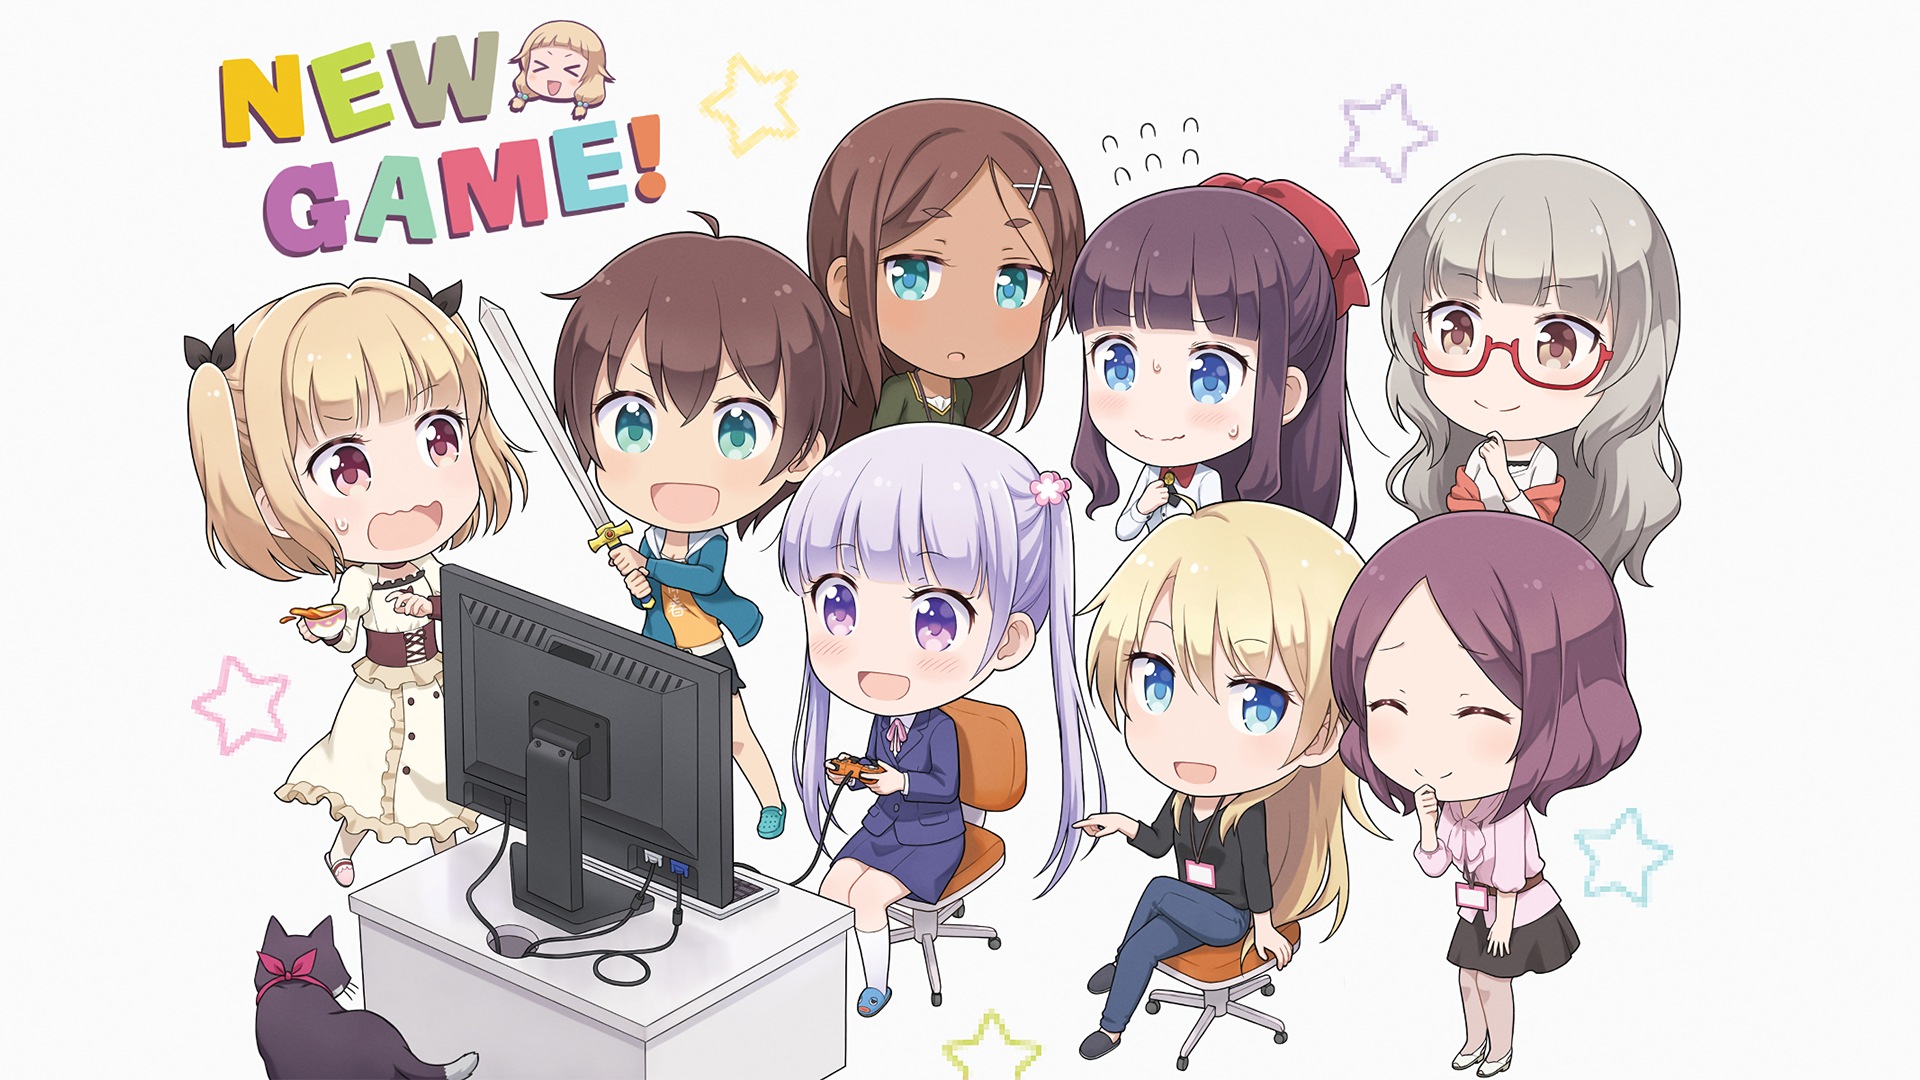 1920x1080 New Game! Wallpapers and Background Images - stmed.net